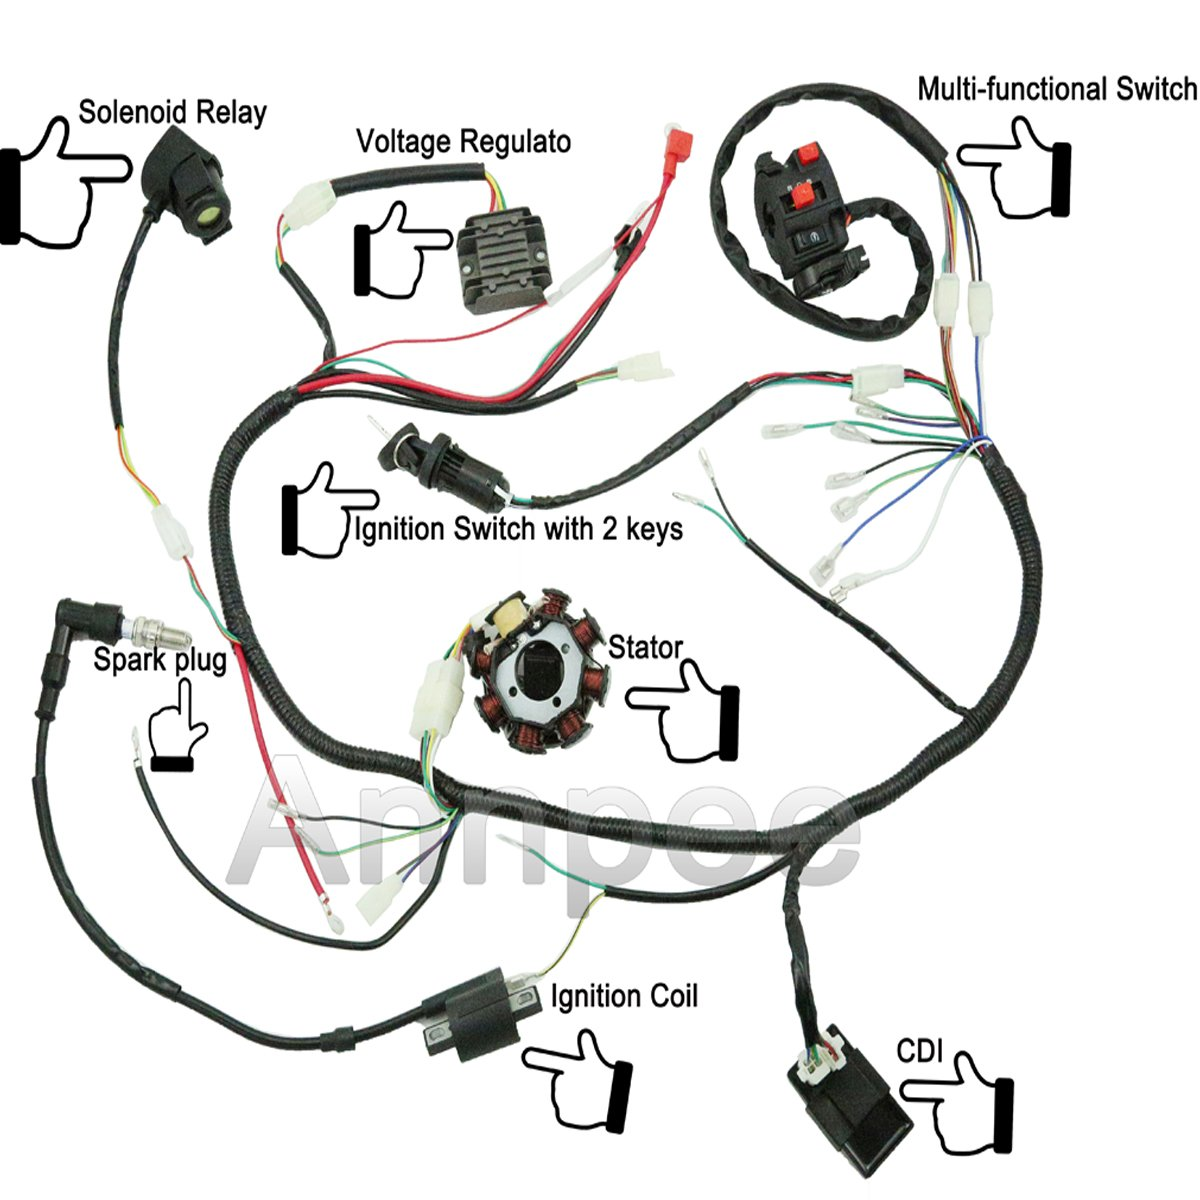 amazon jikan annpee plete wiring harness kit wire loom Harley Ignition Switch Diagram amazon jikan annpee plete wiring harness kit wire loom electrics stator coil cdi for atv quad 4 four wheelers 150cc 200cc 250cc go kart dirt pit